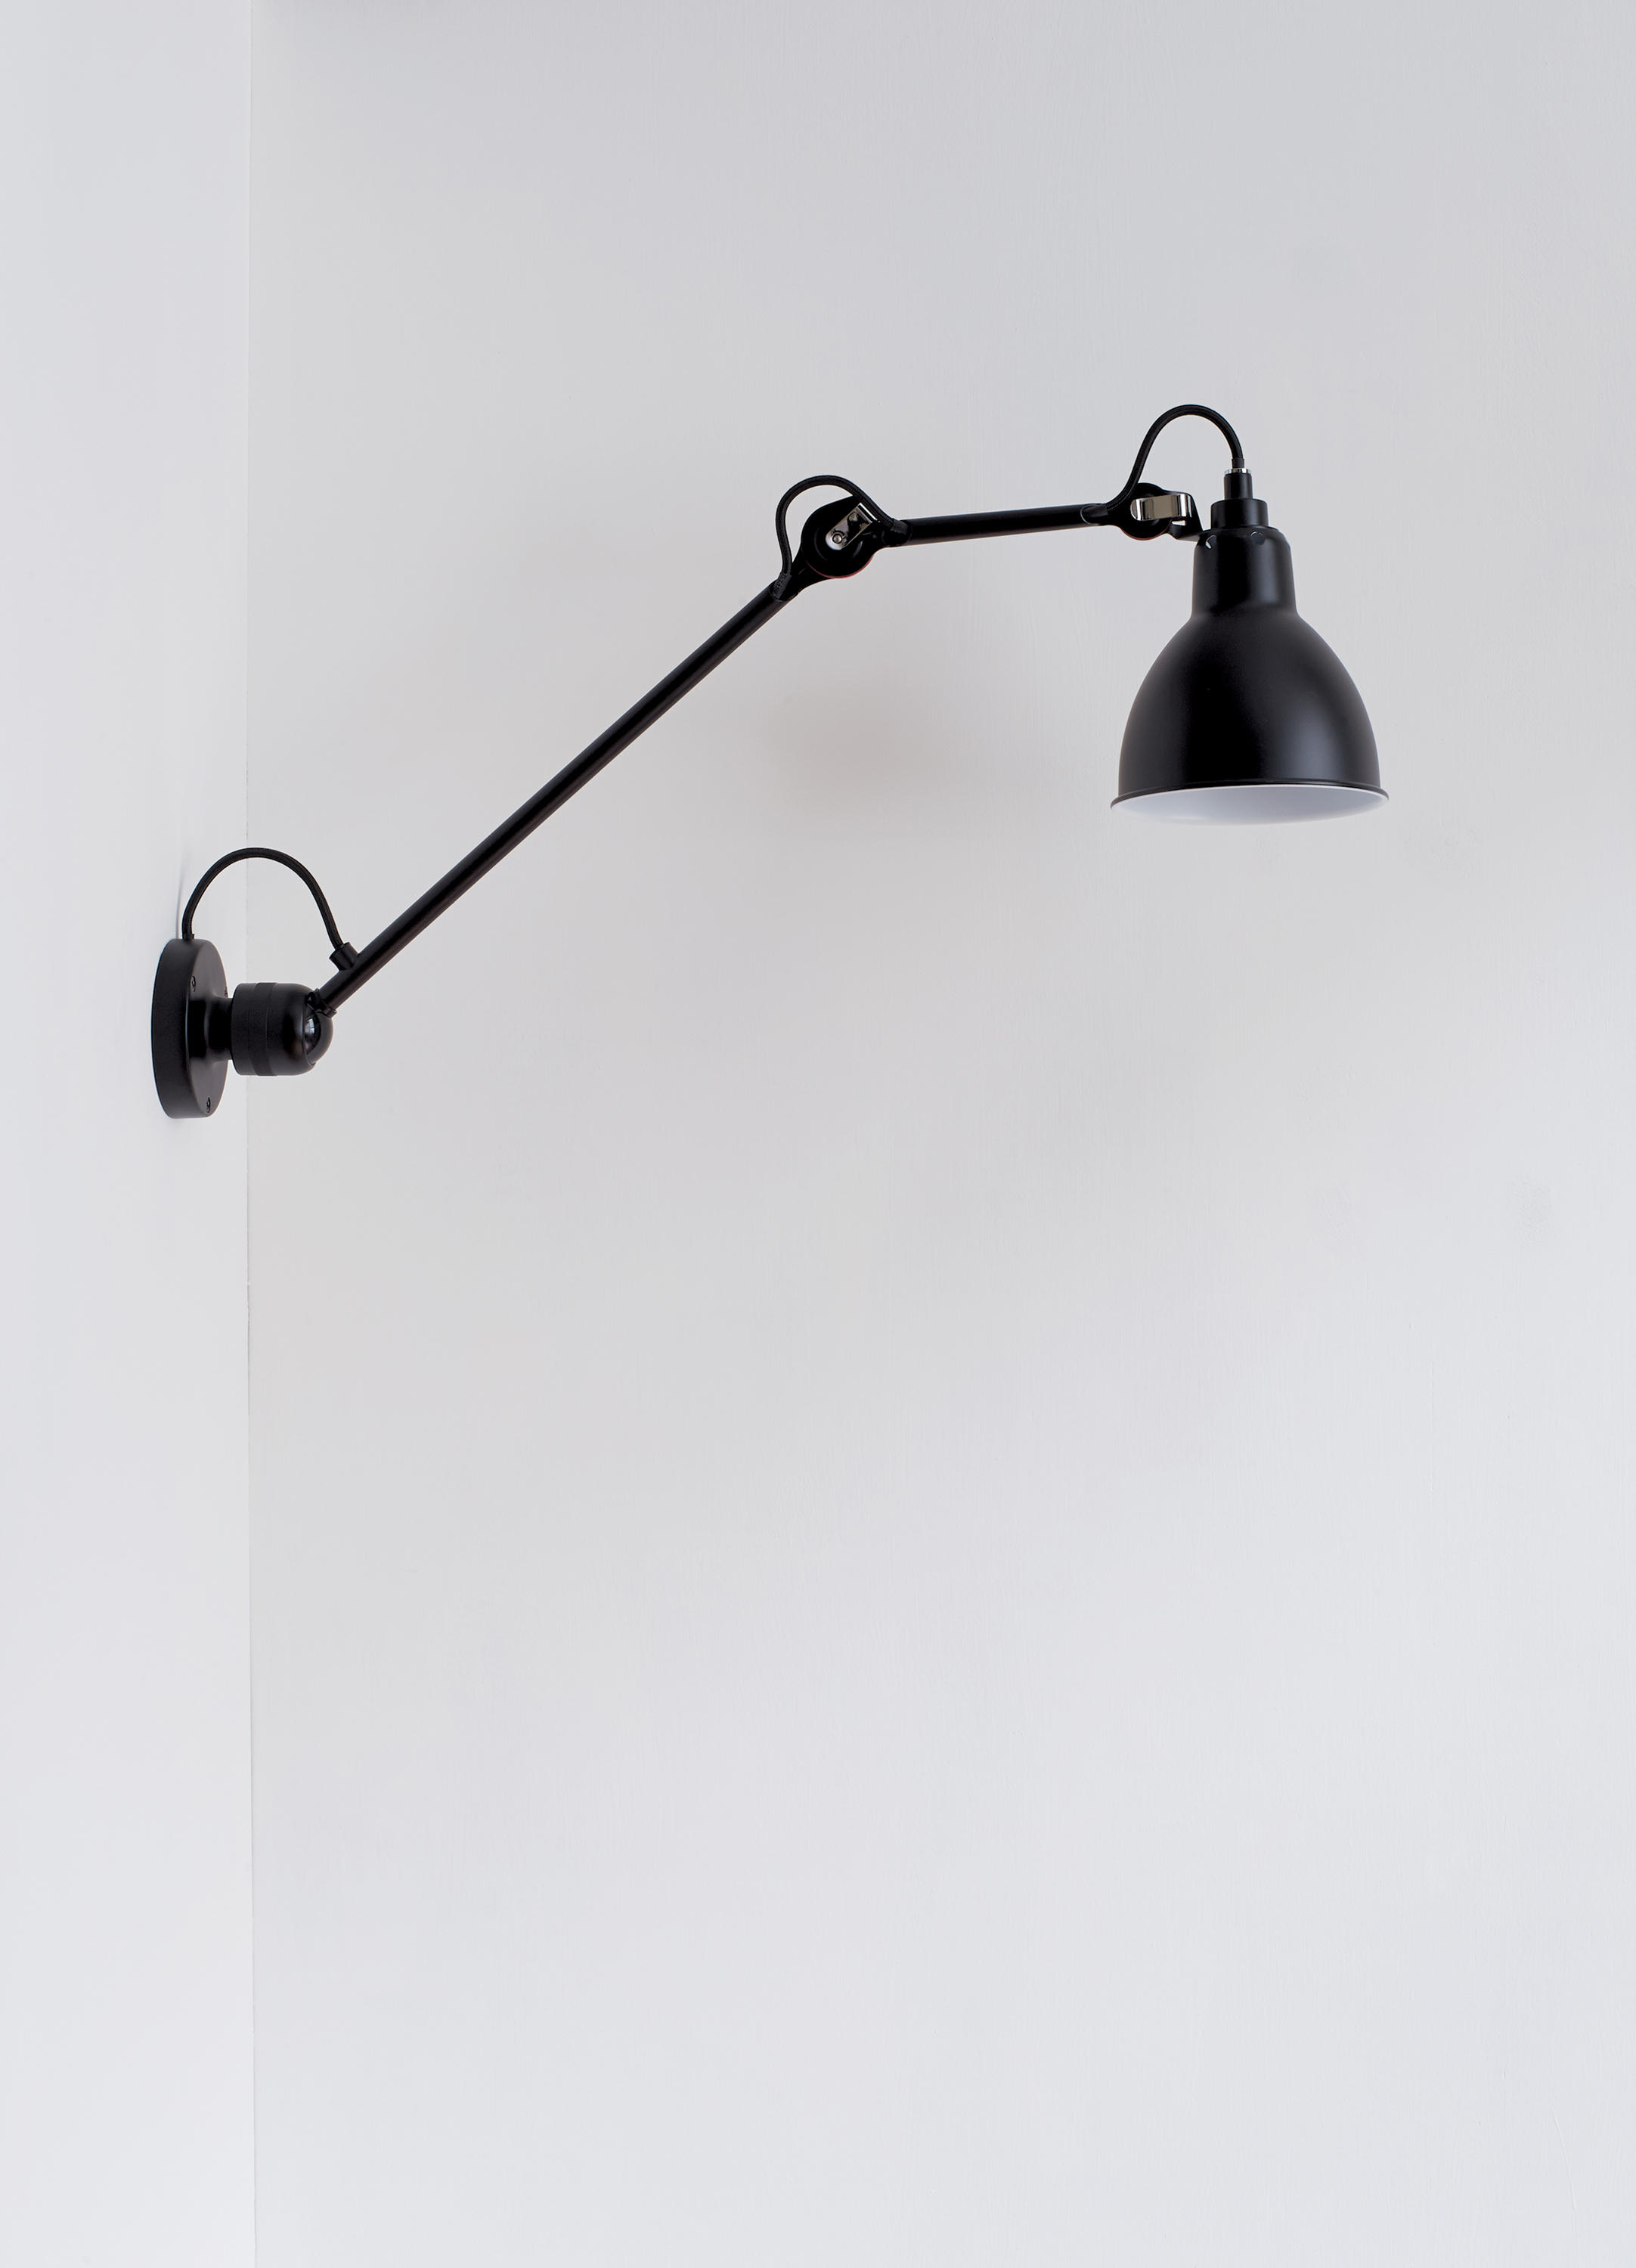 Lampe Gras Lampe Gras N304 Black Wall Lights From Dcw éditions Architonic